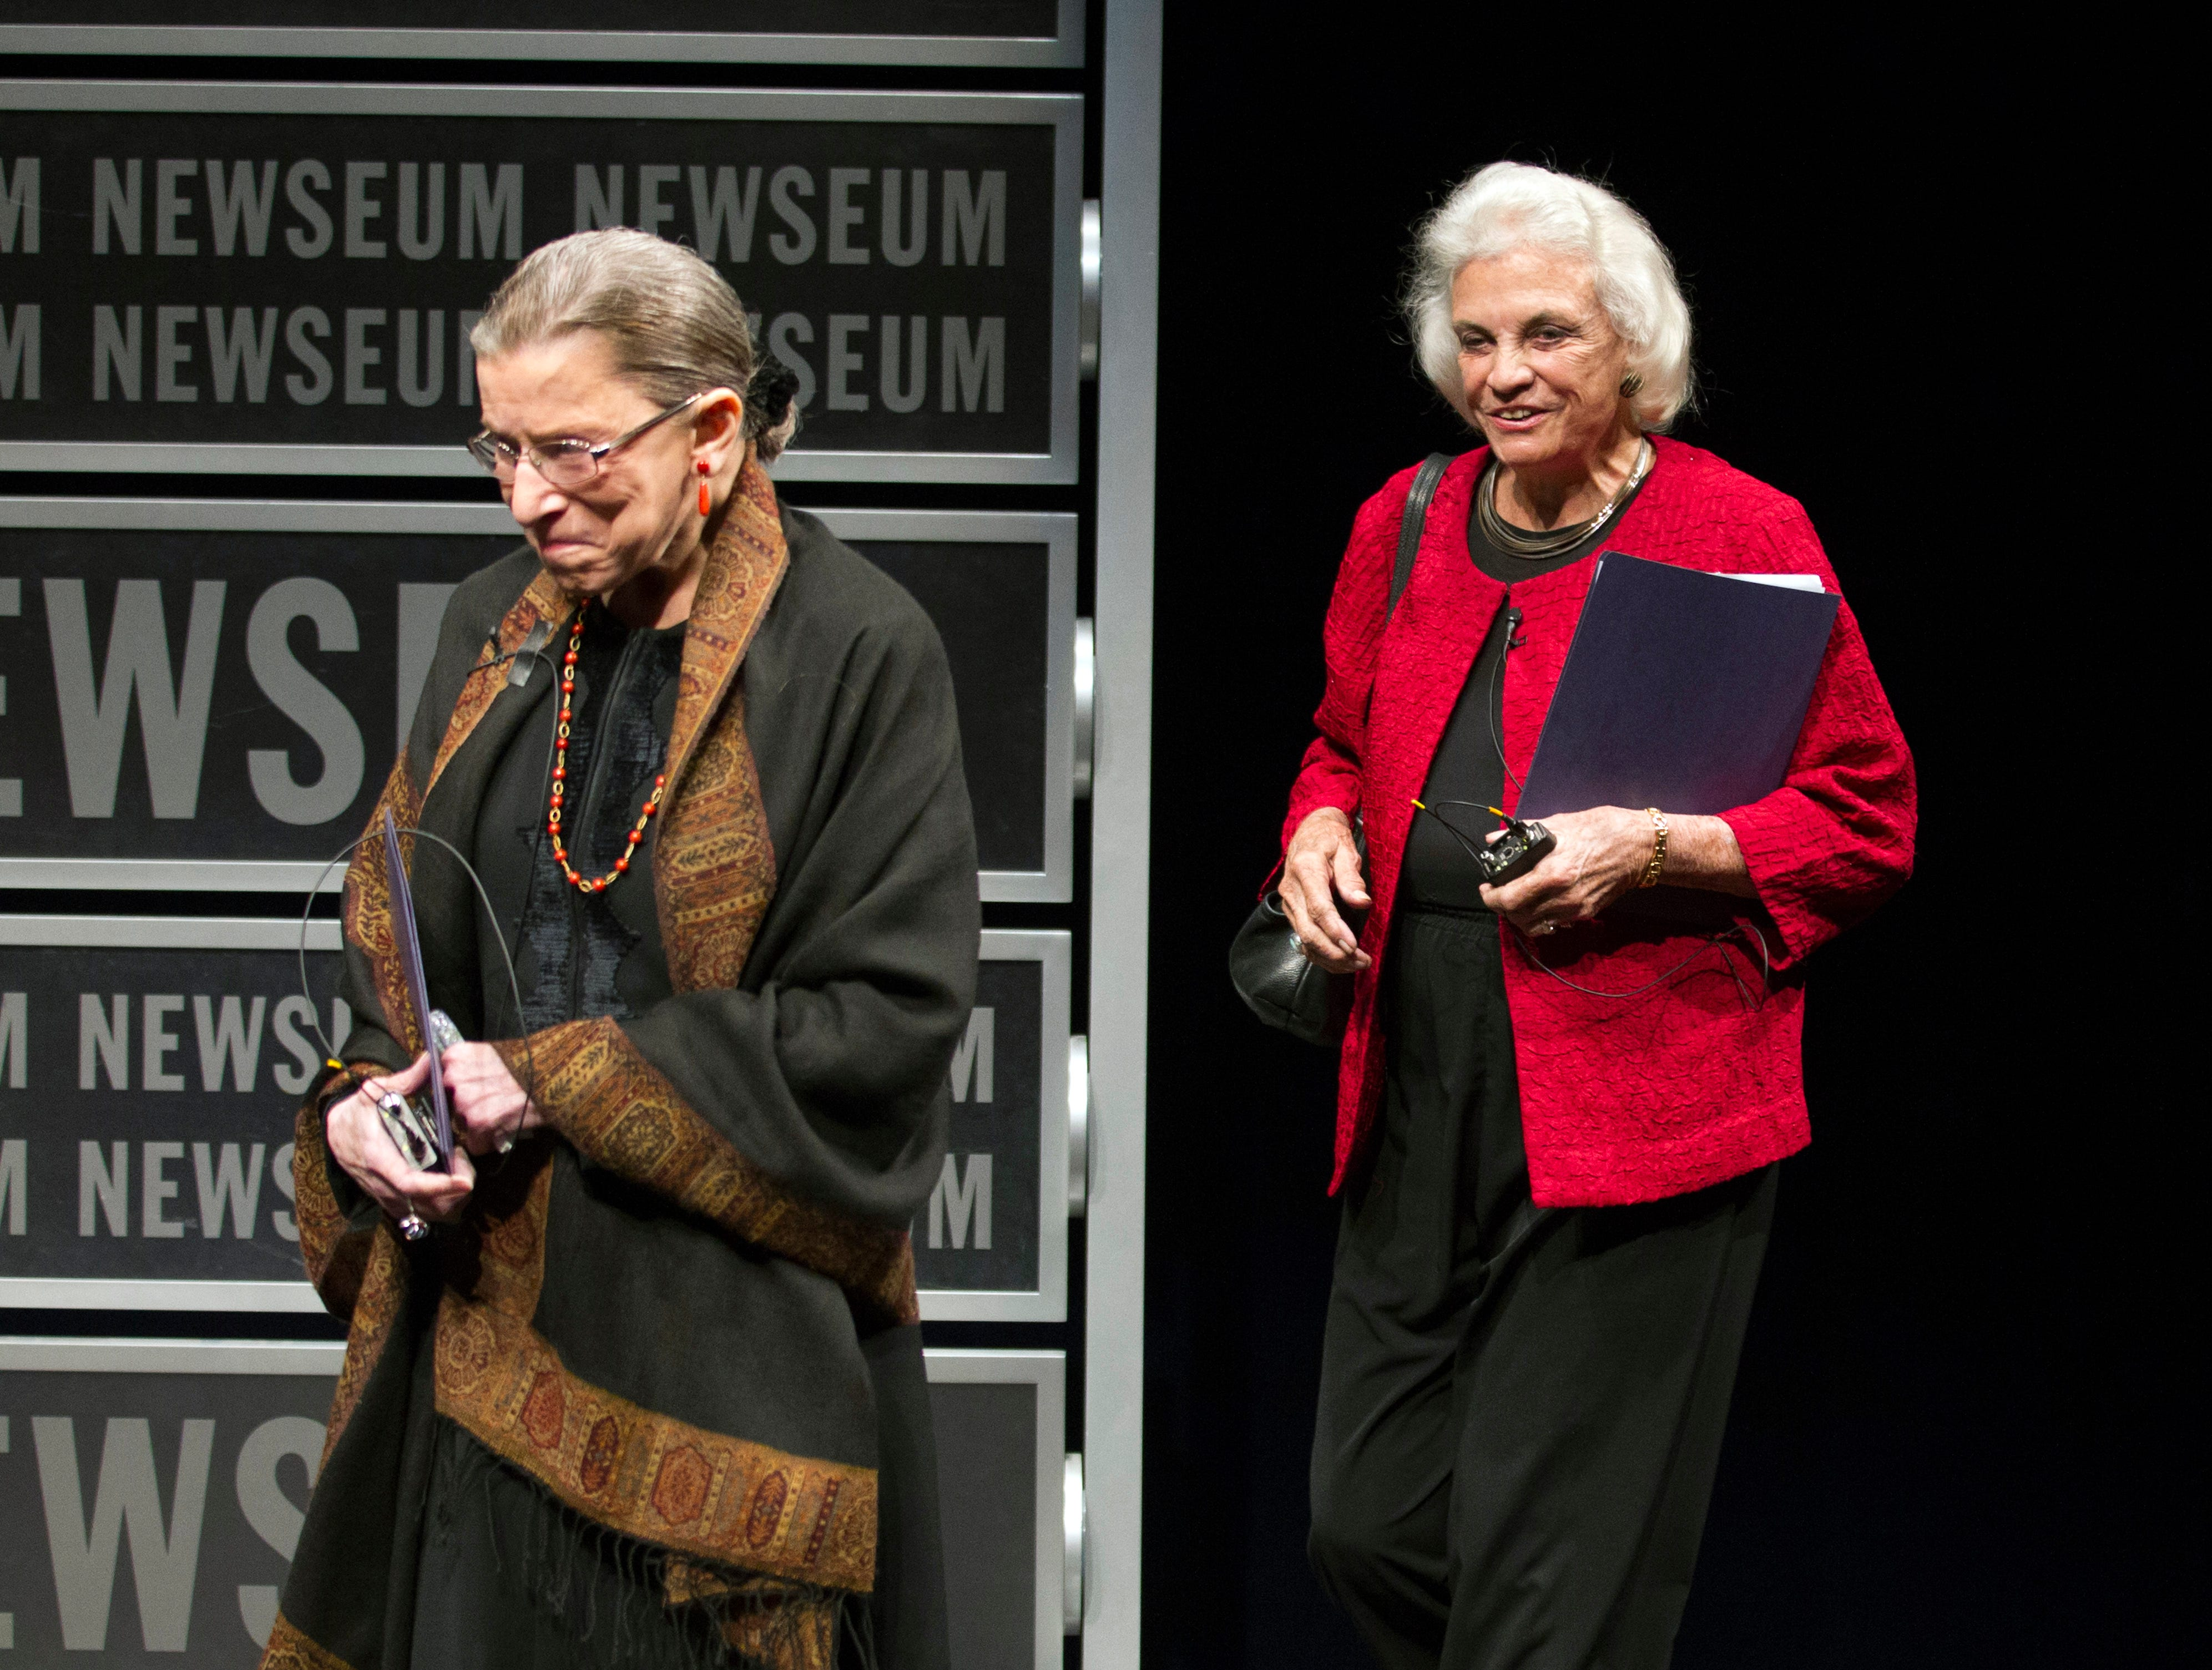 Former Supreme Court Justice Sandra Day O'Conno (right) arrives with Supreme Court Justice Ruth Bader Ginsburg, at a forum to celebrate the 30th anniversary of Sandra Day O'Connor's appointment to the Supreme Court, at the Newseum in Washington, on April 11, 2012.